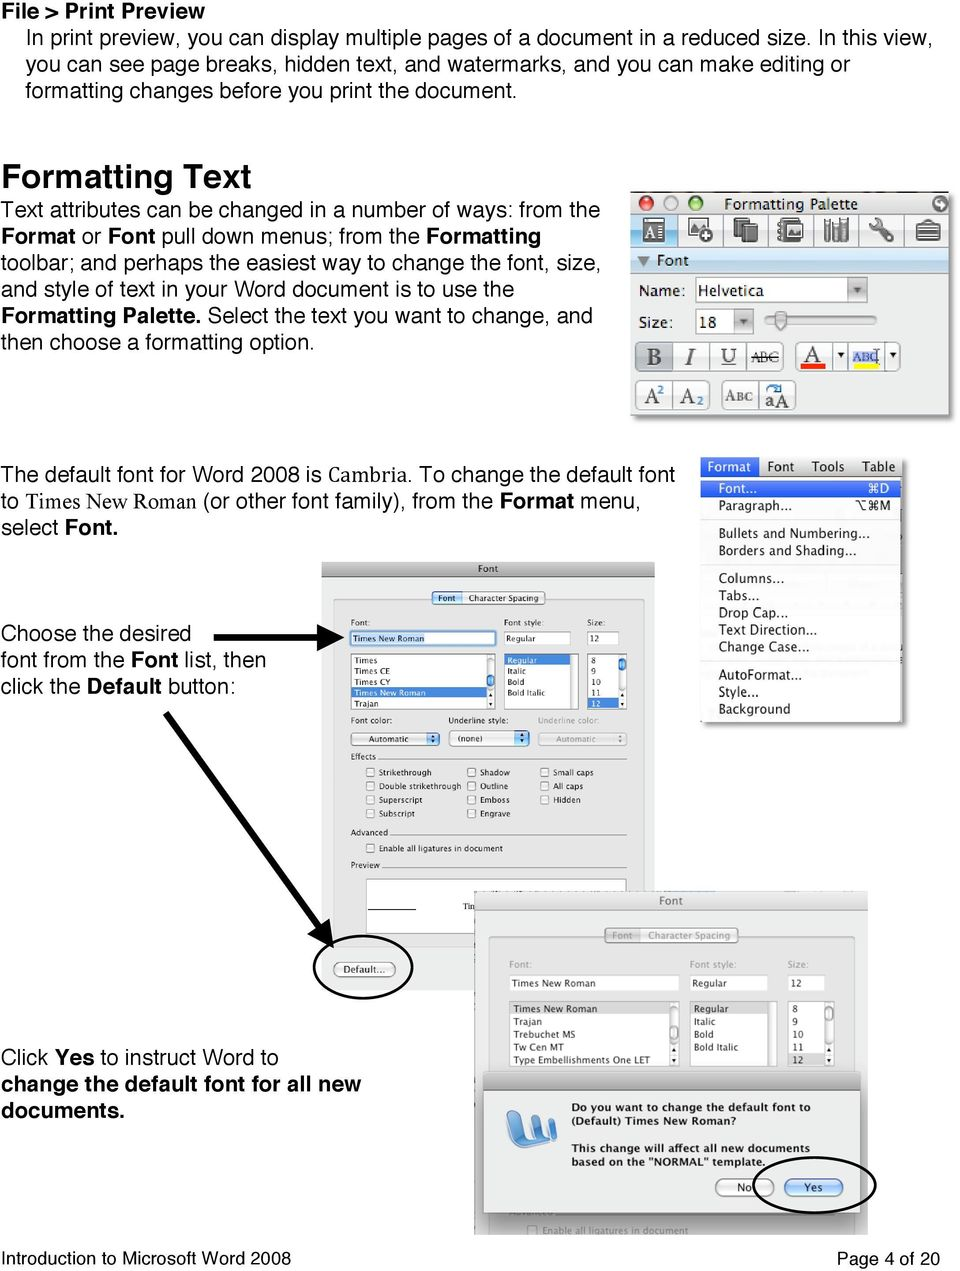 Formatting Text Text attributes can be changed in a number of ways: from the Format or Font pull down menus; from the Formatting toolbar; and perhaps the easiest way to change the font, size, and